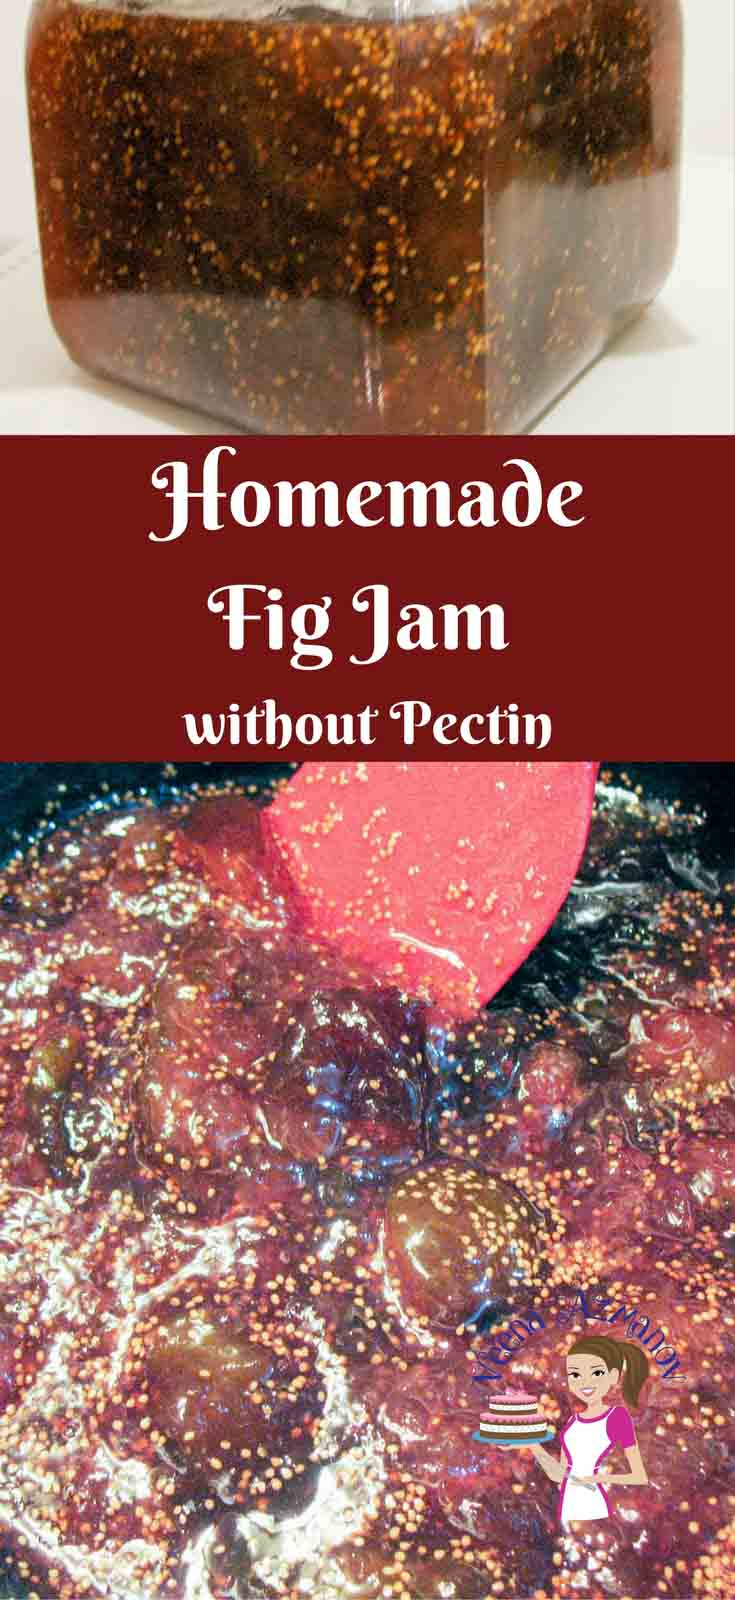 This homemade fig jam recipe is soft, fruity, delicious and easy to spread. In this video I show you how to make this classic jam recipe without using any pectin or artificial flavorings just like our moms and grandmas use to do it.